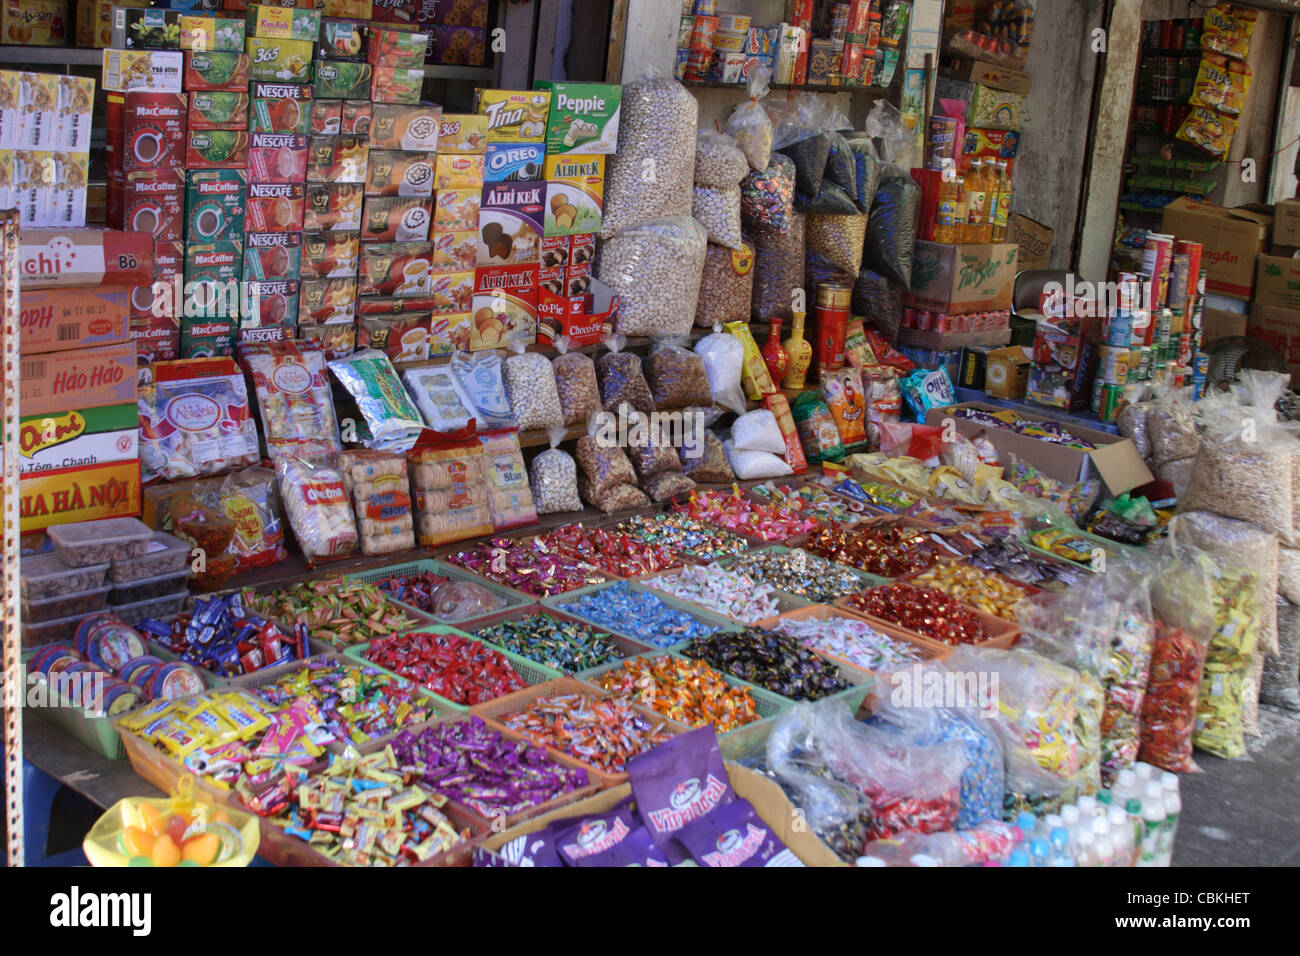 Candy Store Front Stockfotos & Candy Store Front Bilder - Alamy